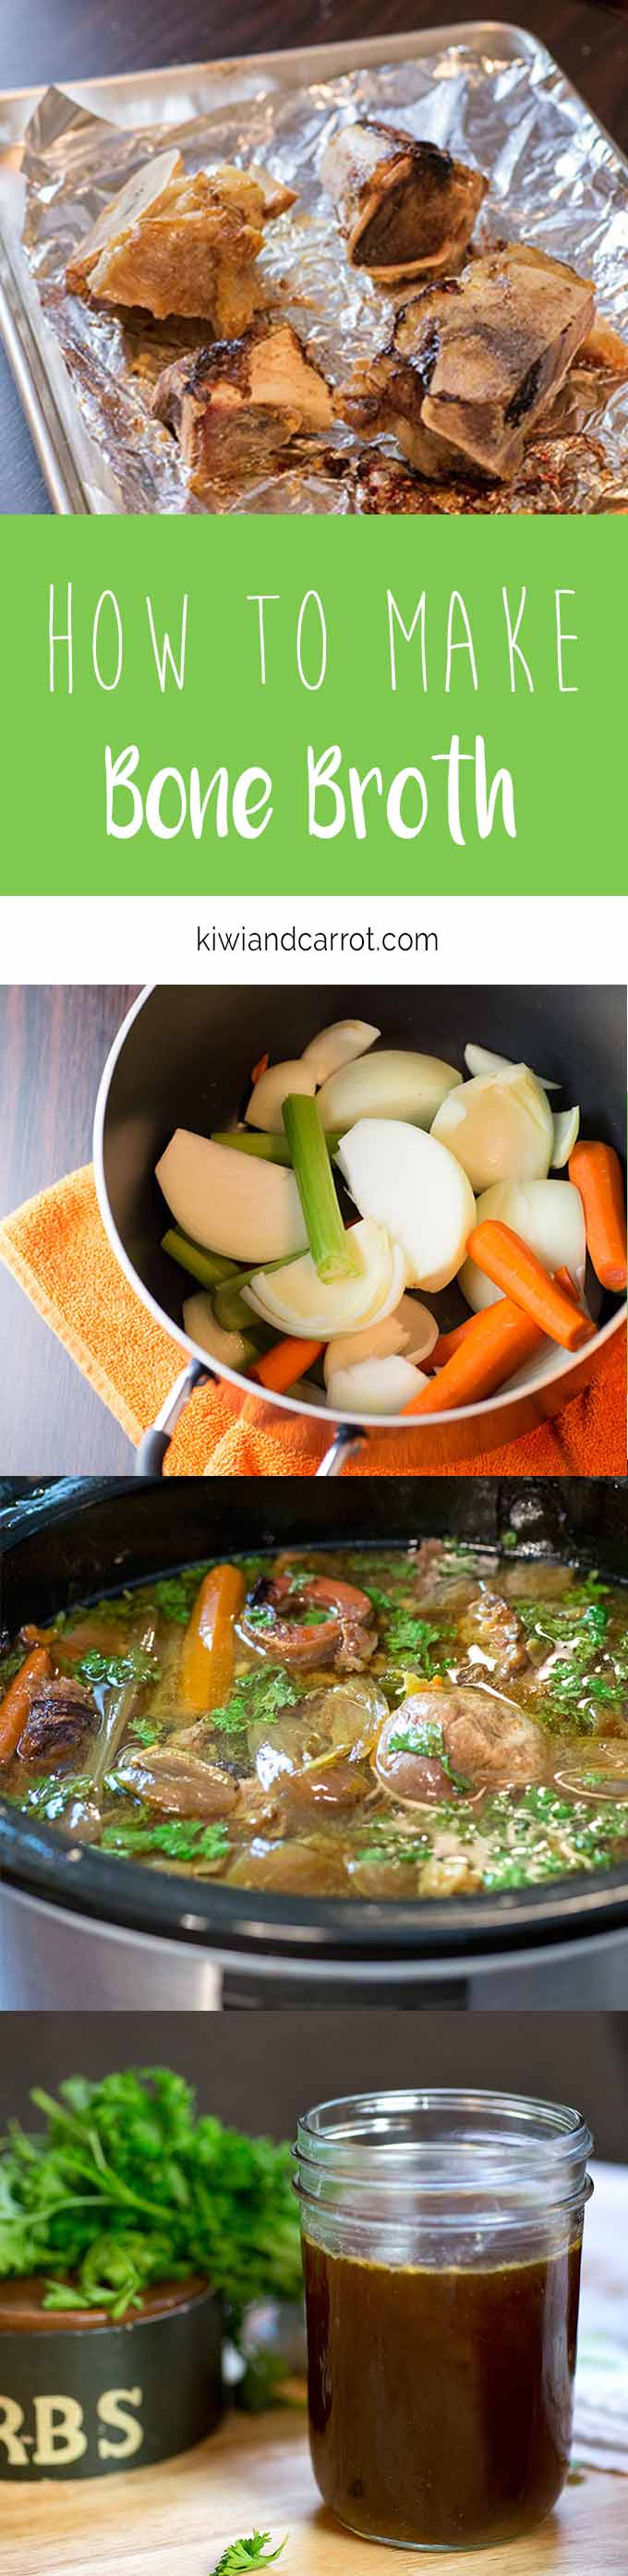 Step-by-step instructions of how to make bone broth